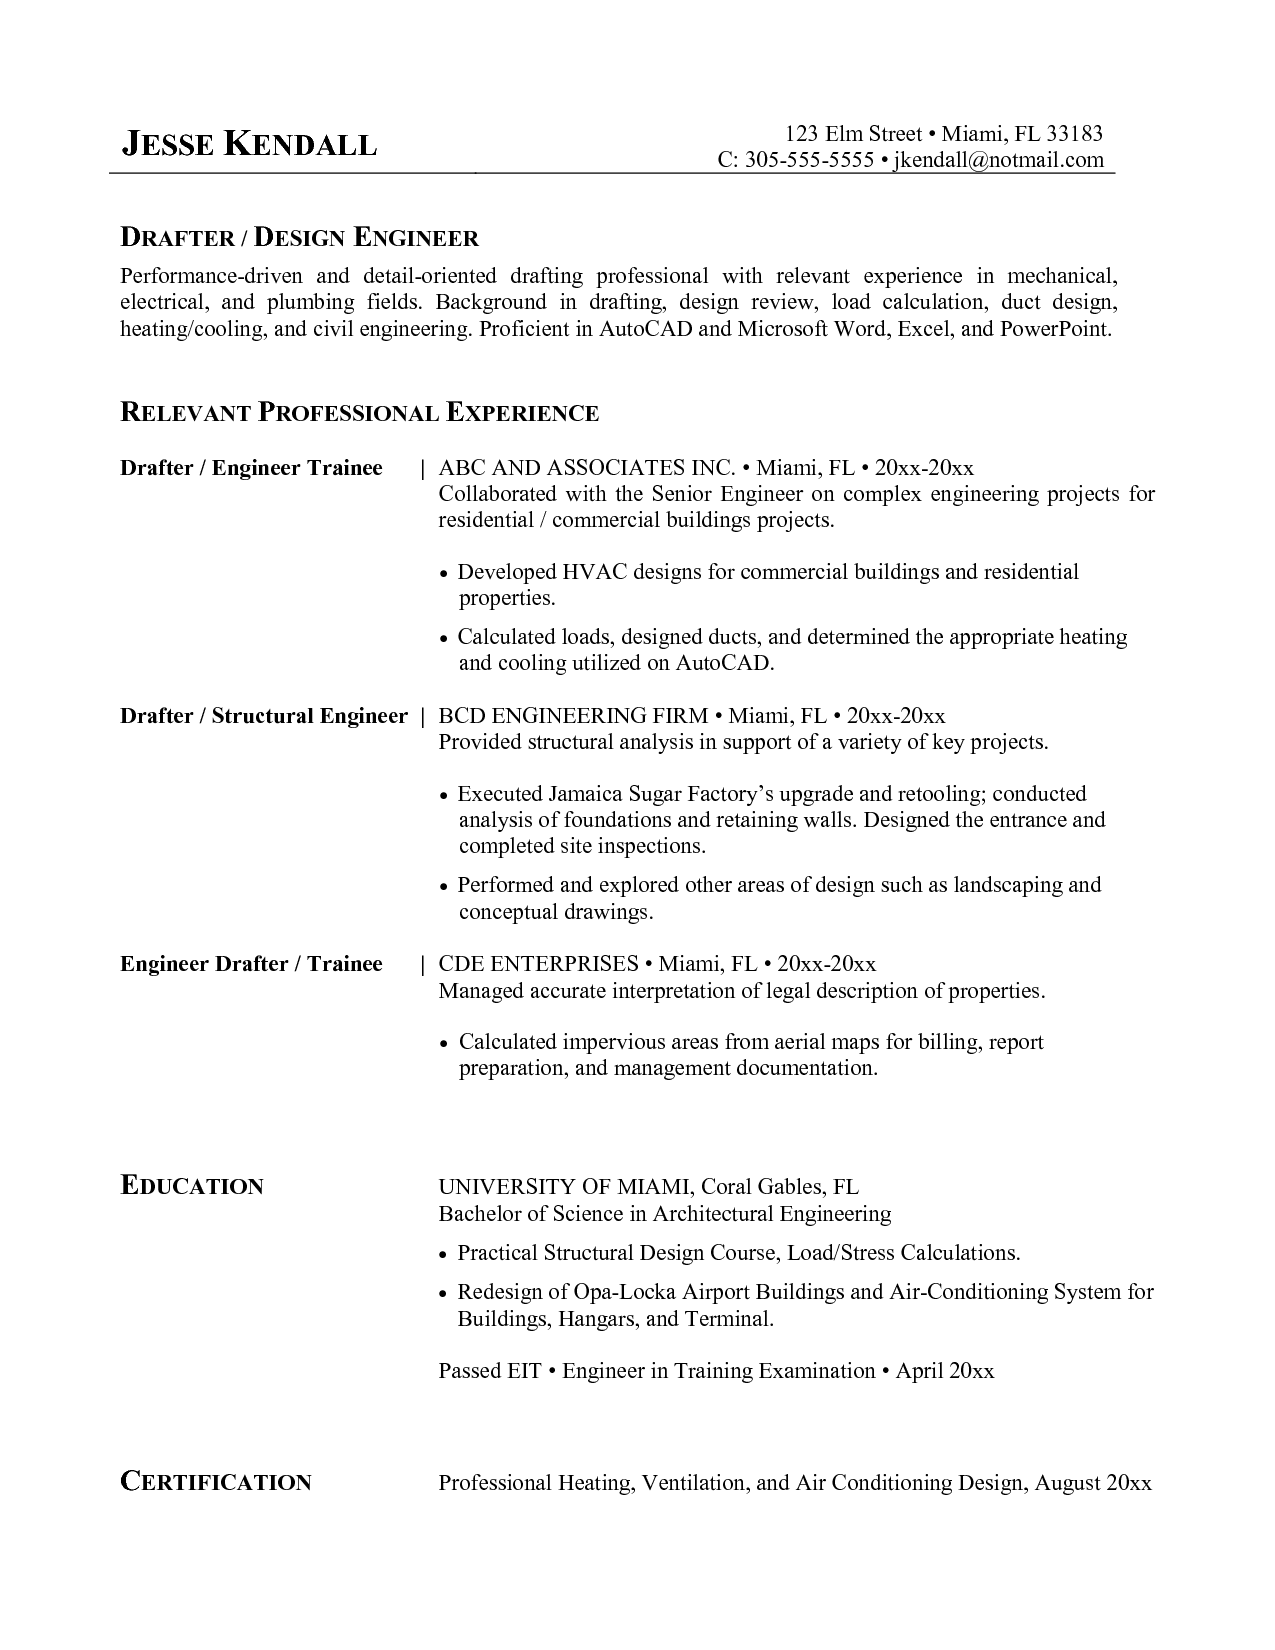 sample pharmacist cover letter for resume letter great hvac resume sample hvac resume samples templates hvac resume format